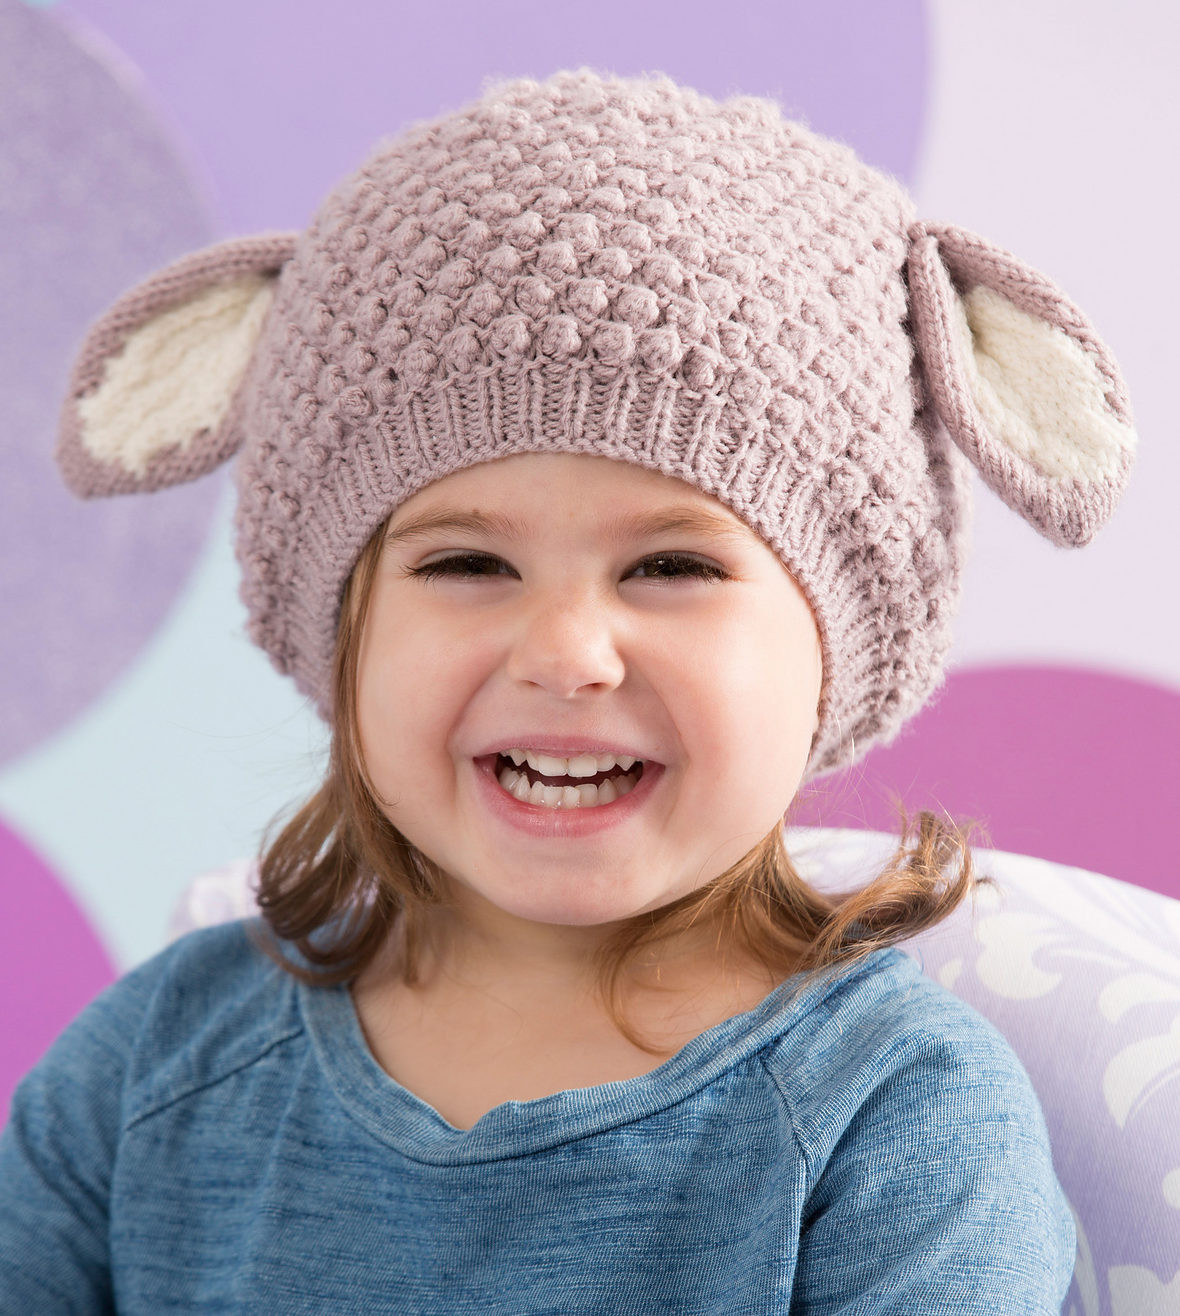 Elegant Animal Hat Knitting Patterns Knitted Hats for toddlers Of Attractive 49 Images Knitted Hats for toddlers